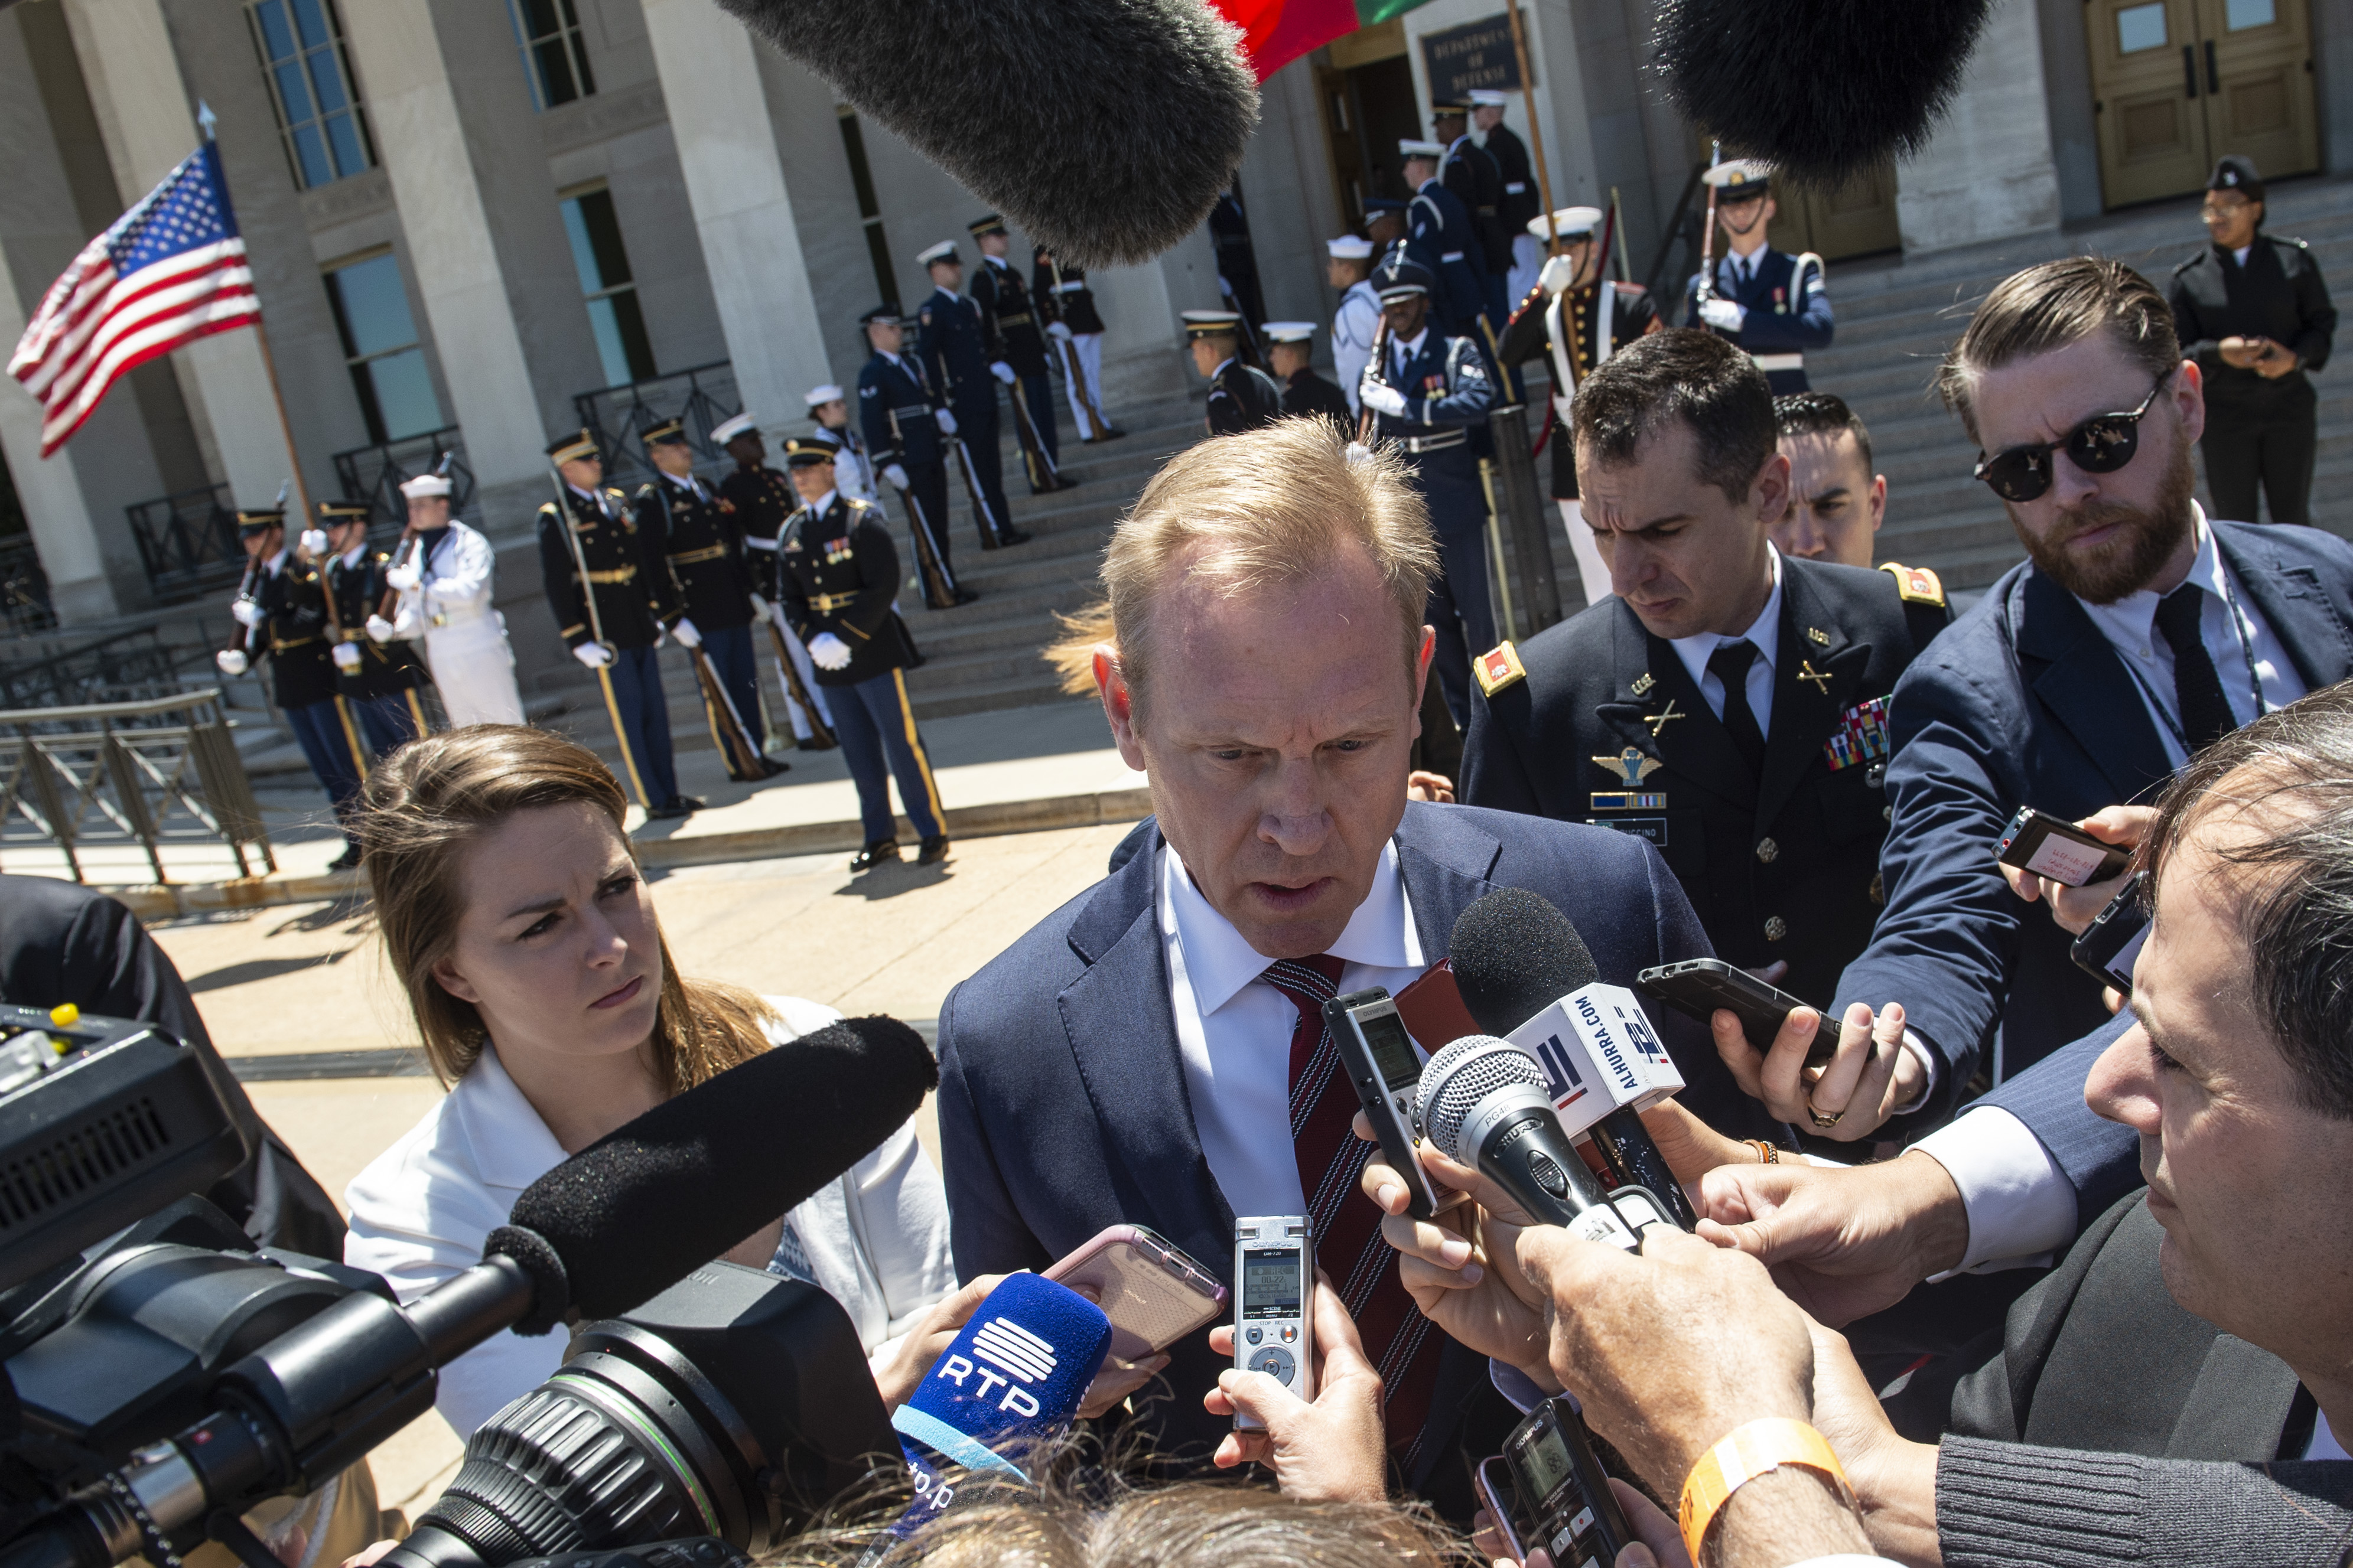 Acting US Secretary of Defense Patrick Shanahan speaks to reporters before his meeting with his Portuguese counterpart Joao Gomes Cravinho at the Pentagon in Washington, DC, on June 14, 2019. (ERIC BARADAT/AFP/Getty Images)